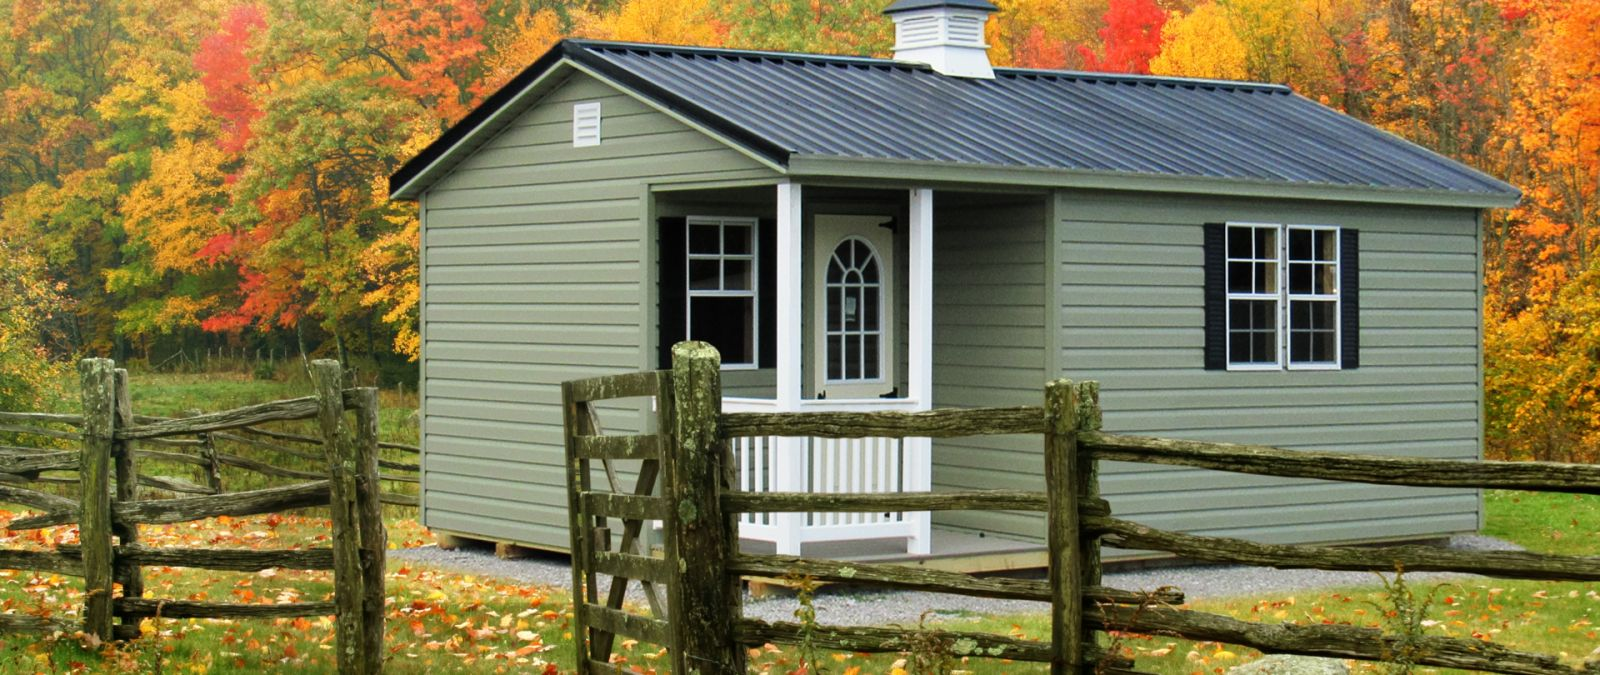 A prefab small cabin for sale in KY and TN